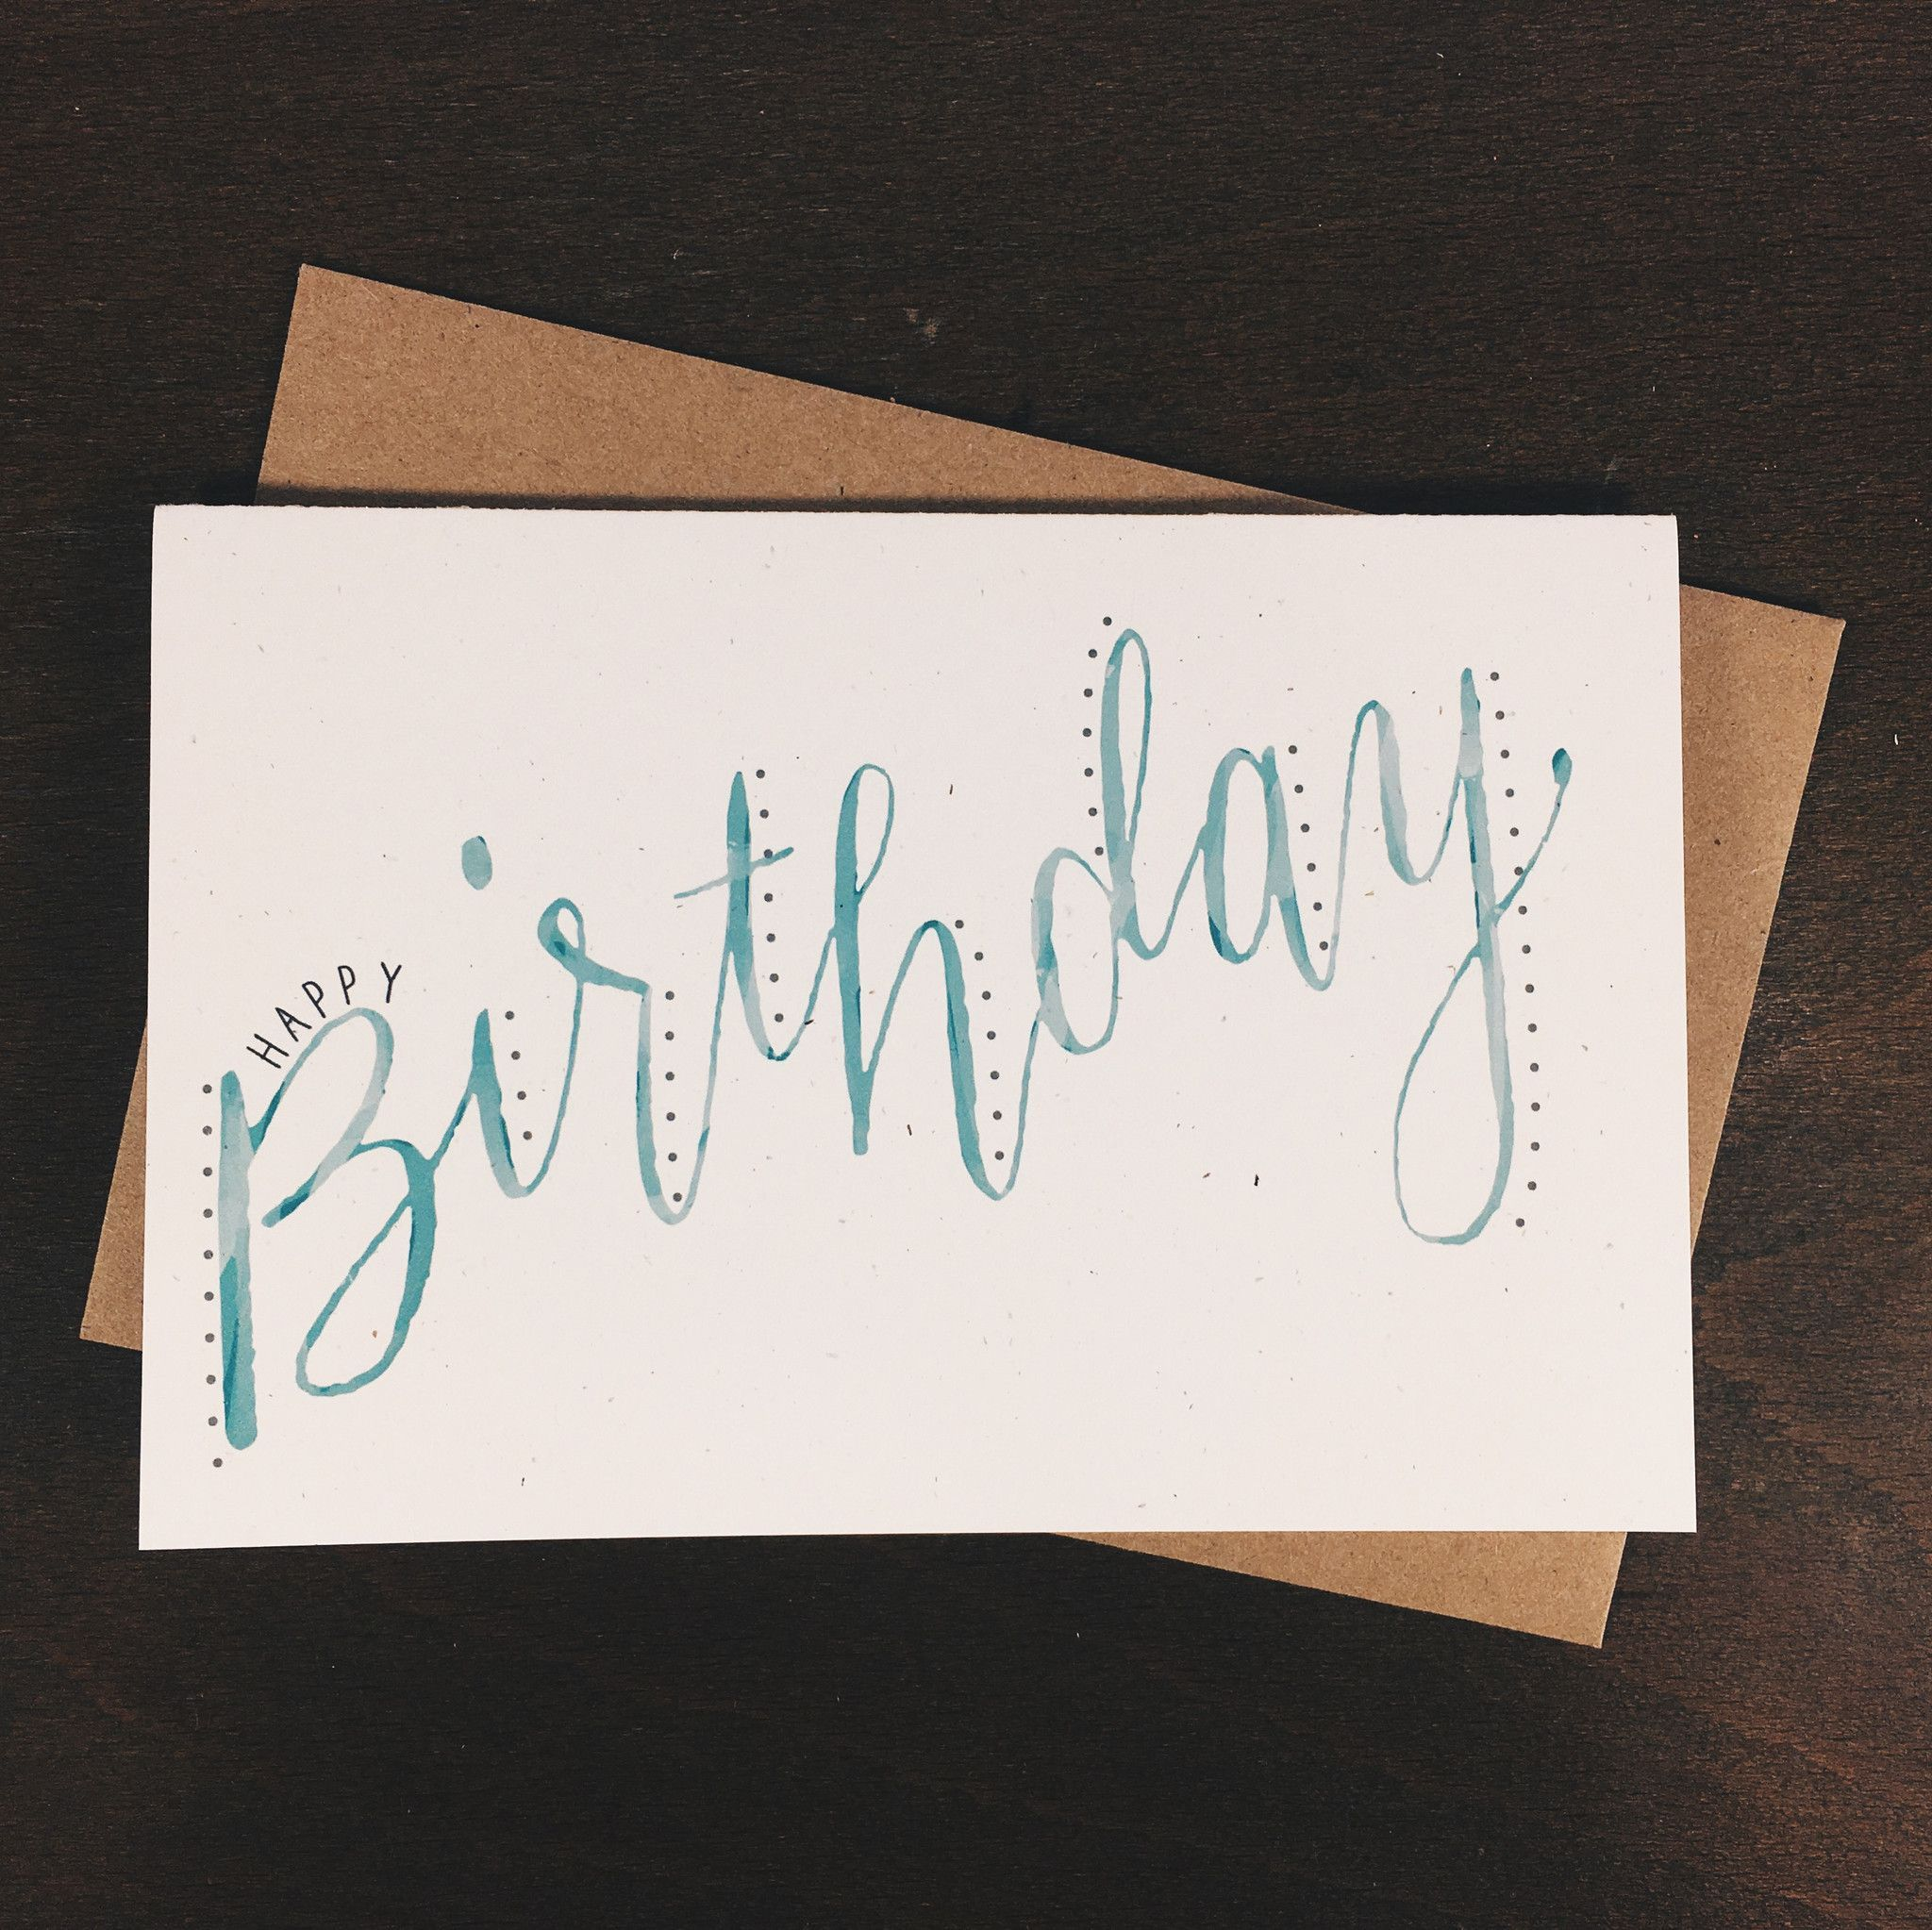 A Simple Hand Lettered Birthday Card Digital Reproduction Of A